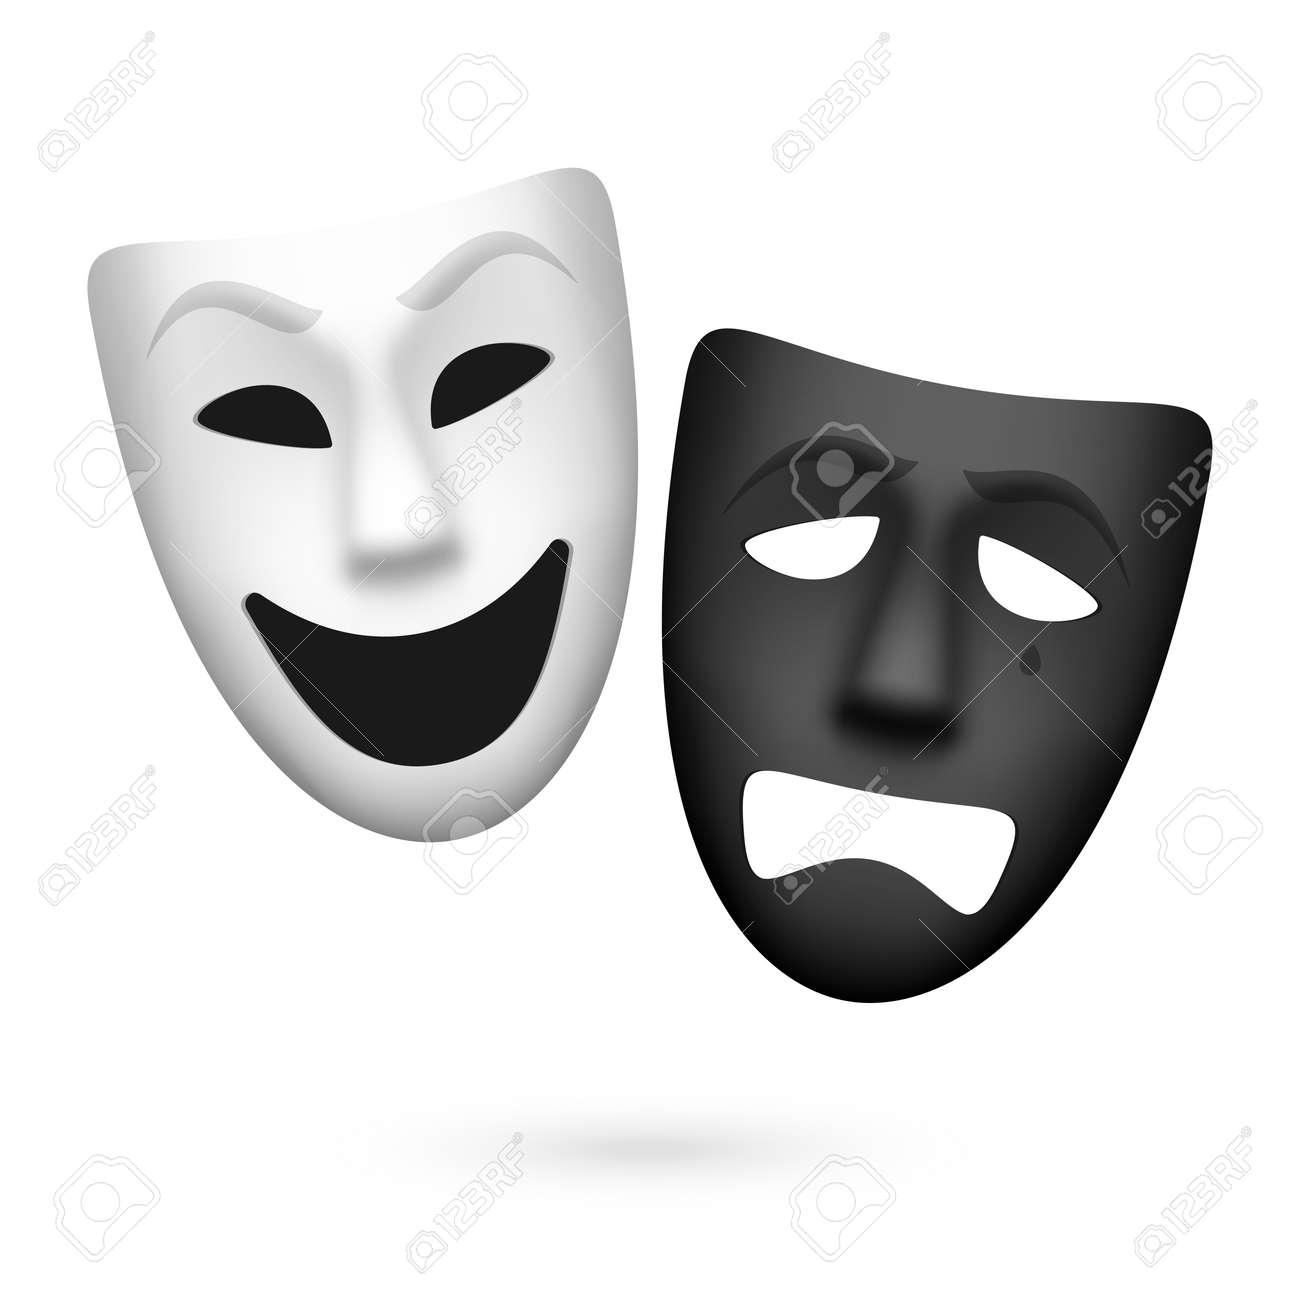 http://previews.123rf.com/images/alhovik/alhovik1311/alhovik131100035/24158390-Comedy-and-tragedy-theatrical-masks-Stock-Vector-theater-mask-theatre.jpg